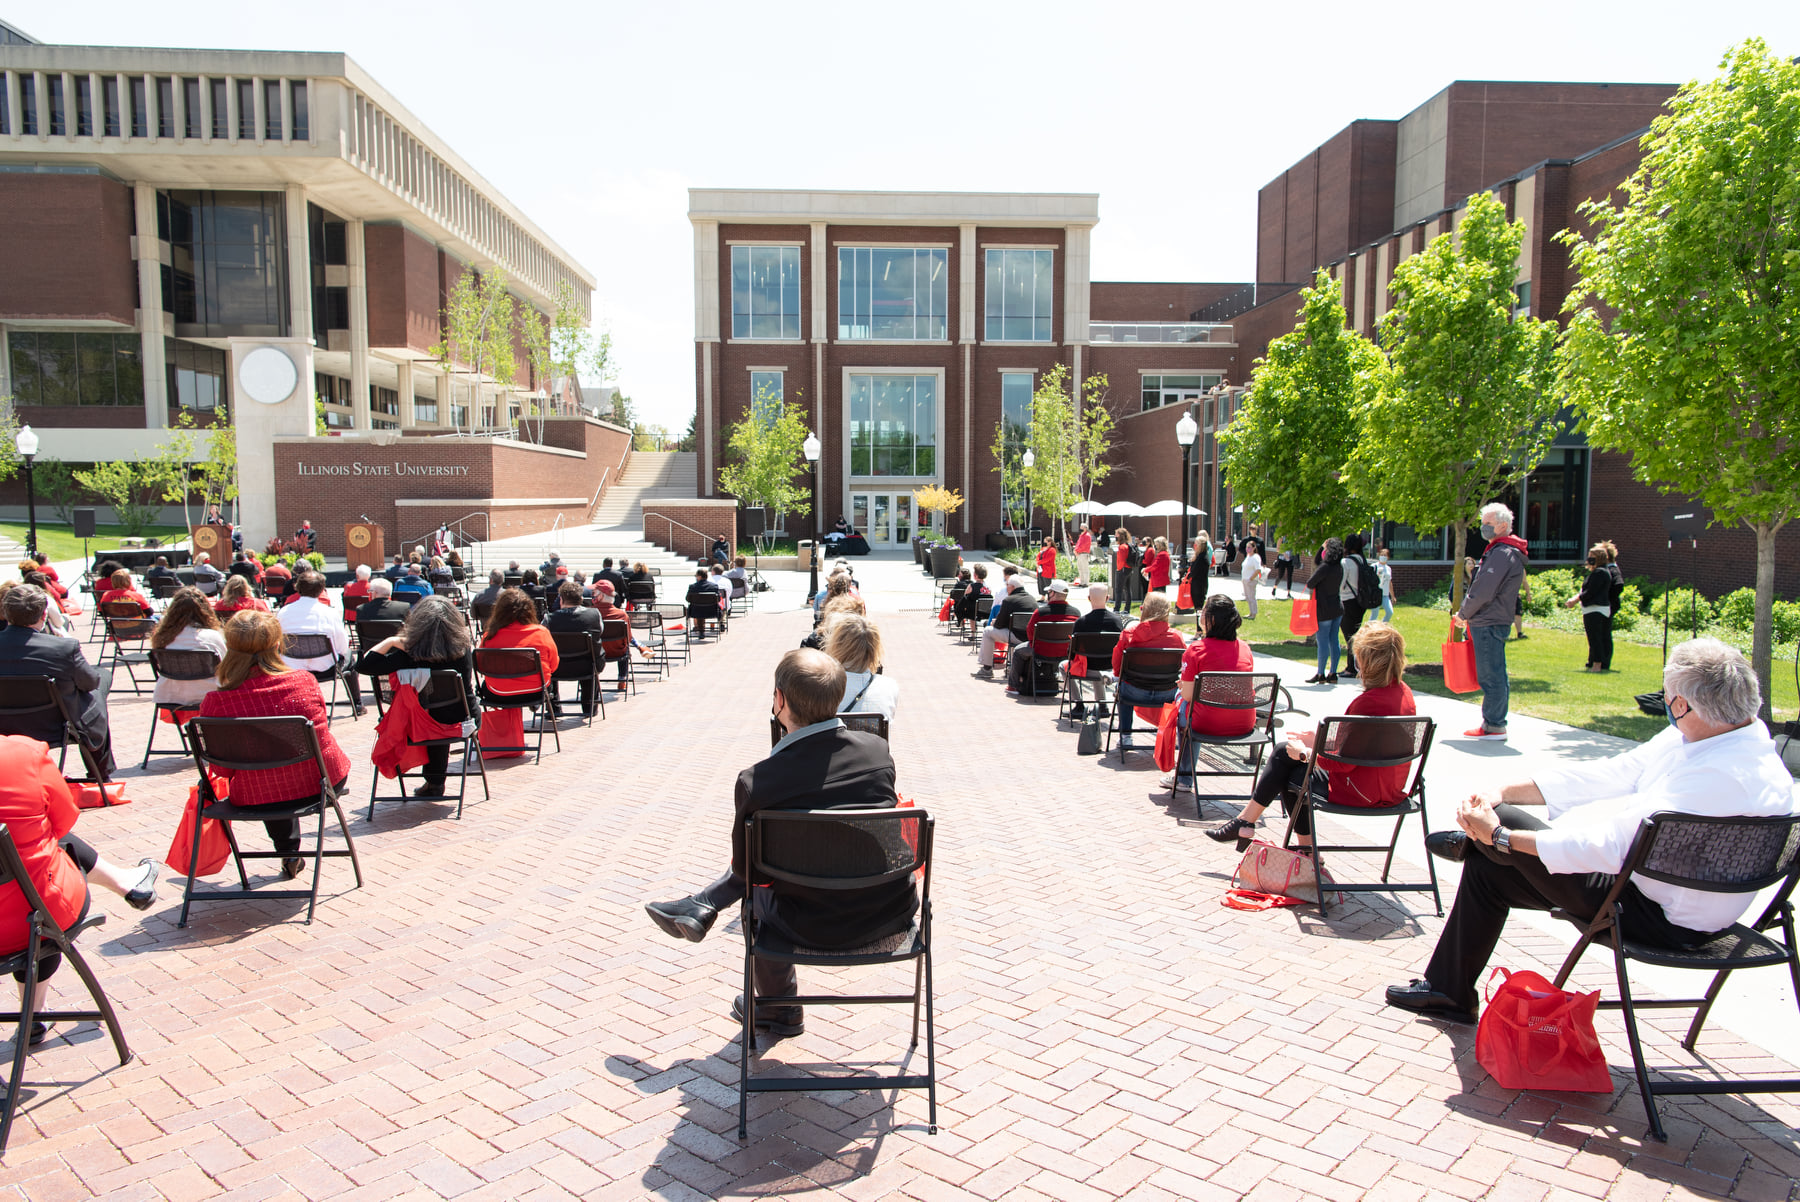 About 100 people gathered for the rededication of the Bone Student Center.